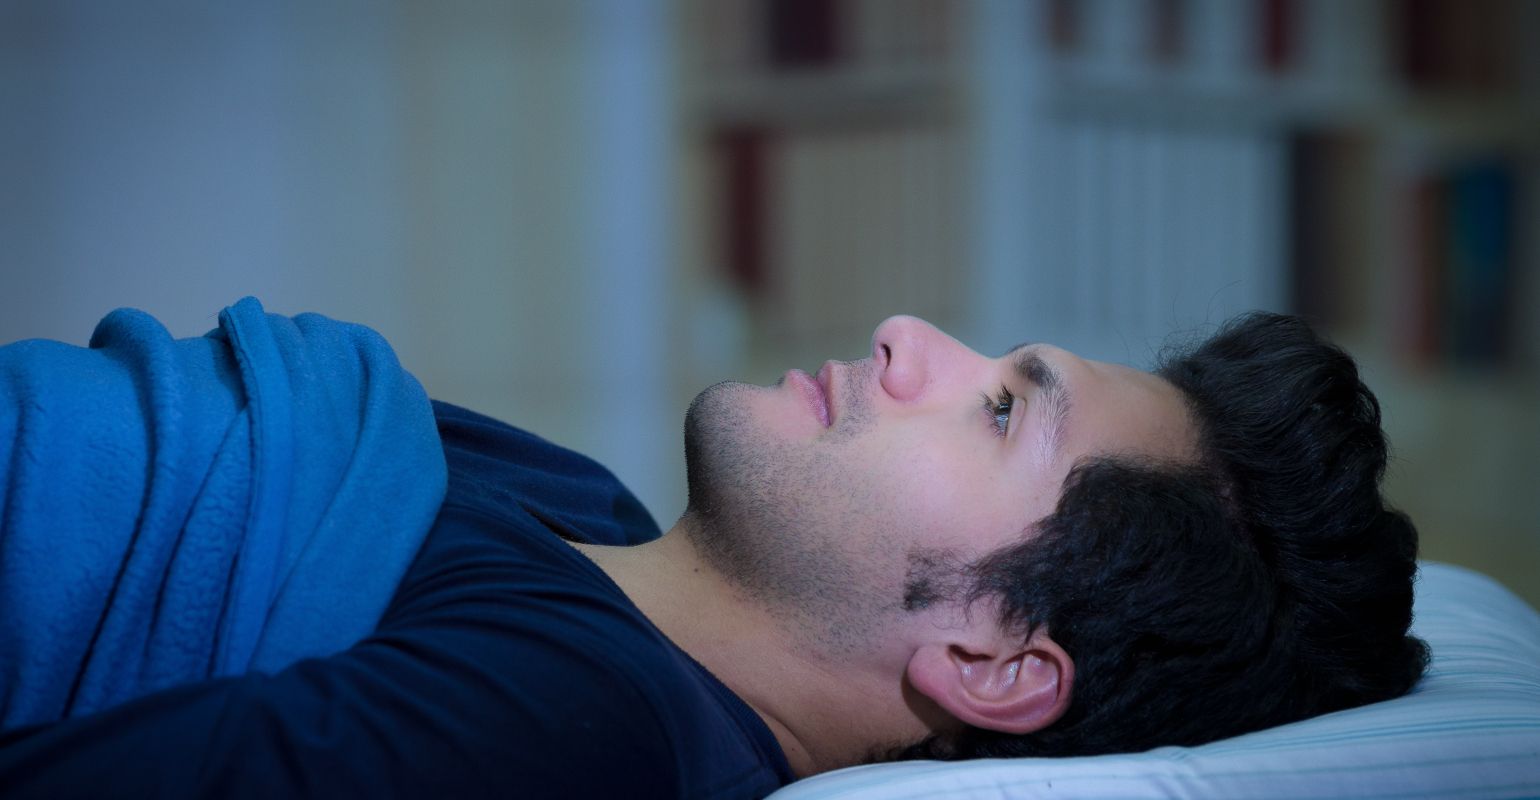 Man-with-insomnia-AdobeStock_158326569-featured.jpeg